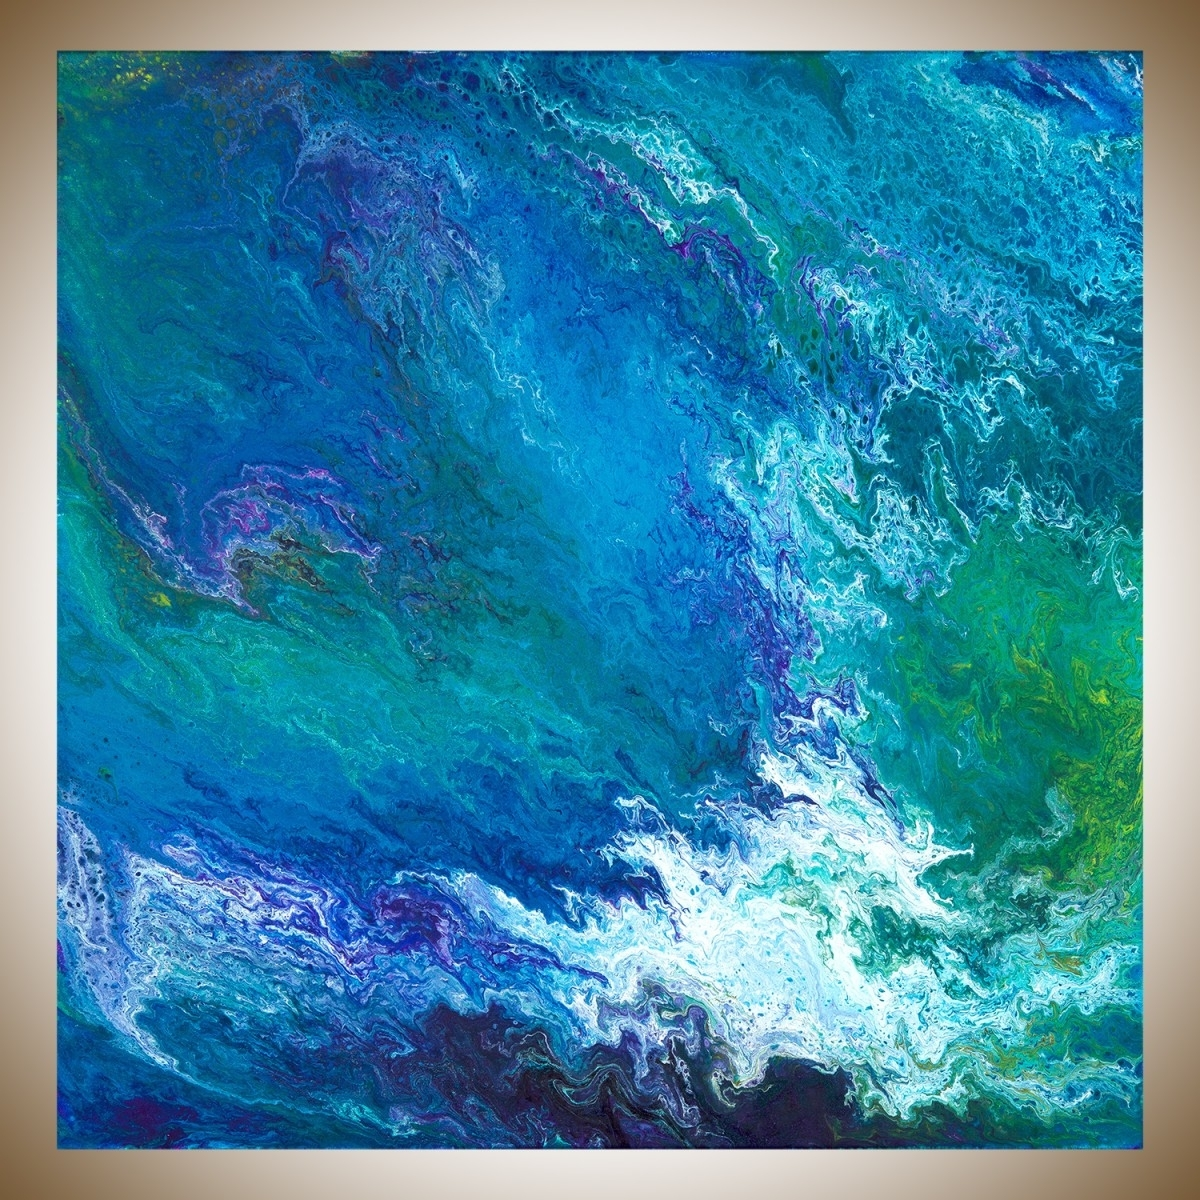 "Waterfallqiqigallery 30"" X 30"" Turquoise Blue Green Purple Intended For Well Liked Turquoise Wall Art (View 20 of 20)"